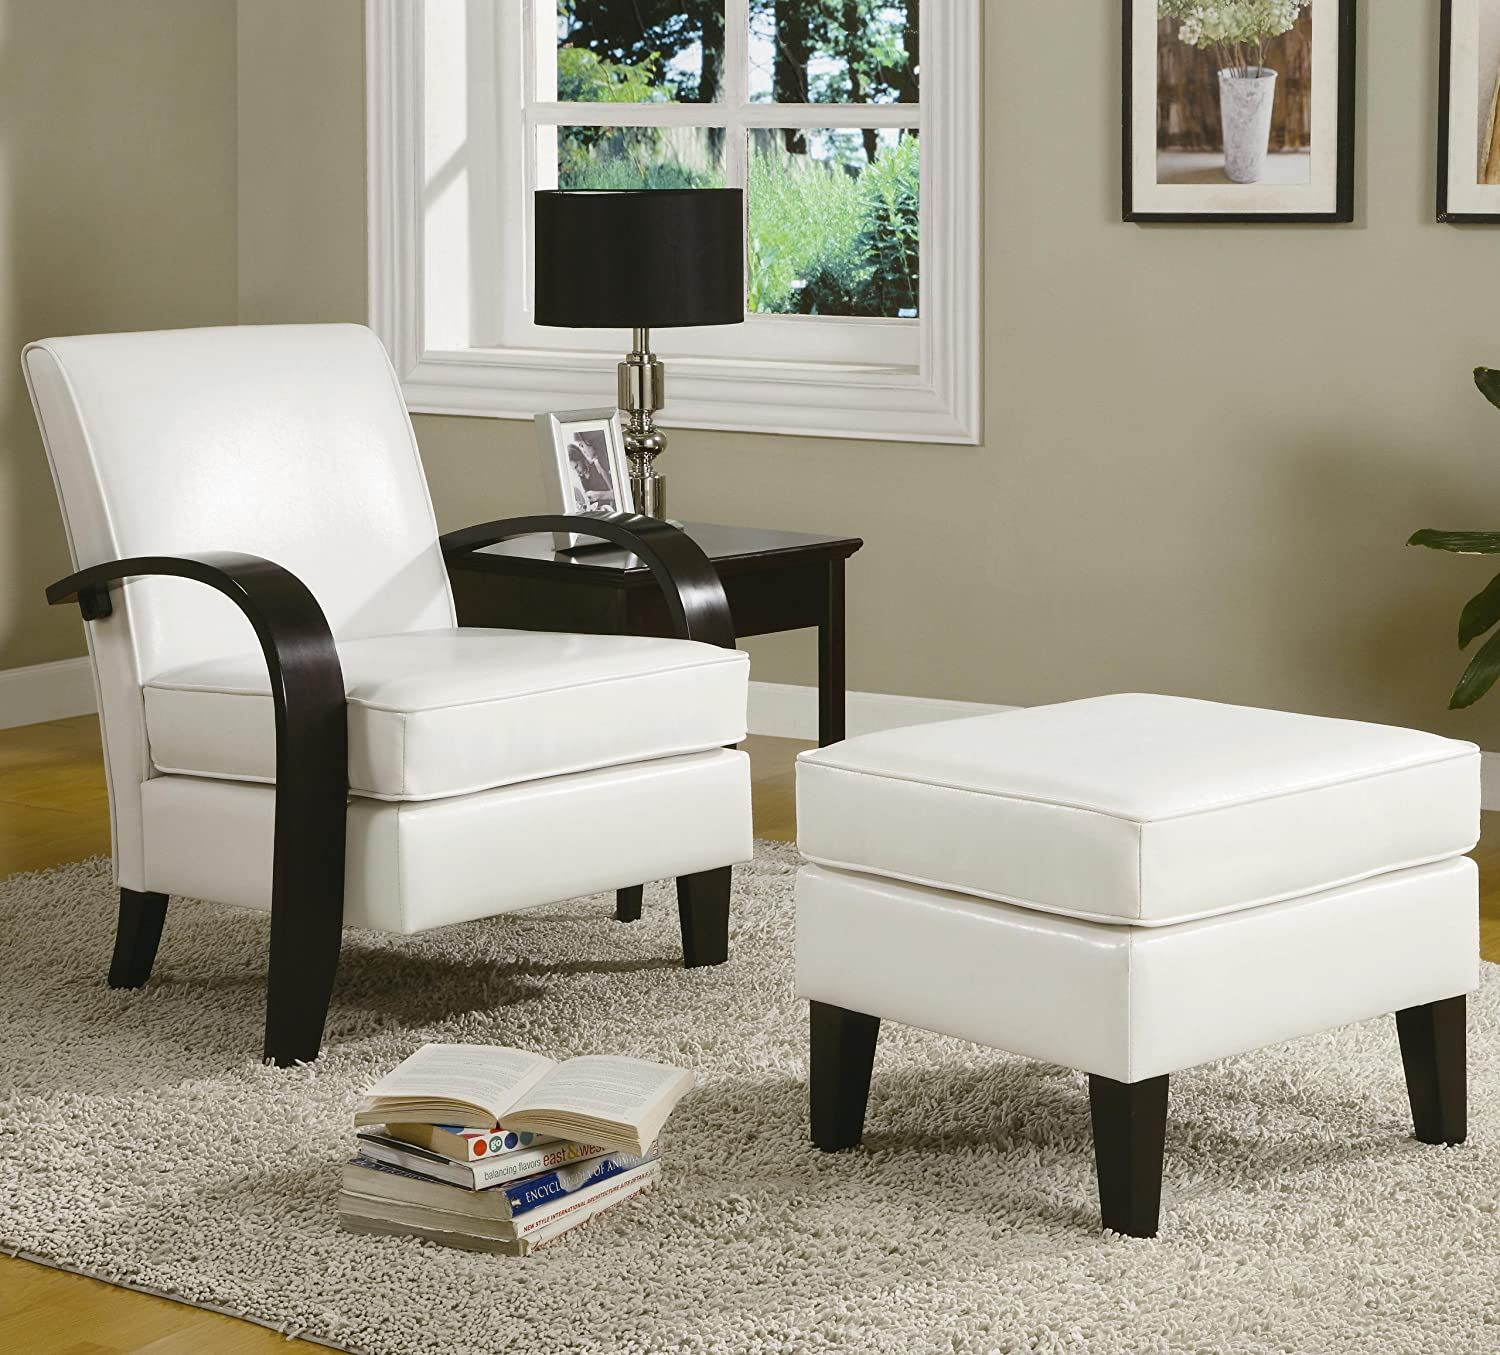 Amazon com  Roundhill Furniture Wonda Bonded Leather Accent Arm Chair with  Ottoman  White  Kitchen   DiningAmazon com  Roundhill Furniture Wonda Bonded Leather Accent Arm  . Modern Living Room Accent Chairs. Home Design Ideas